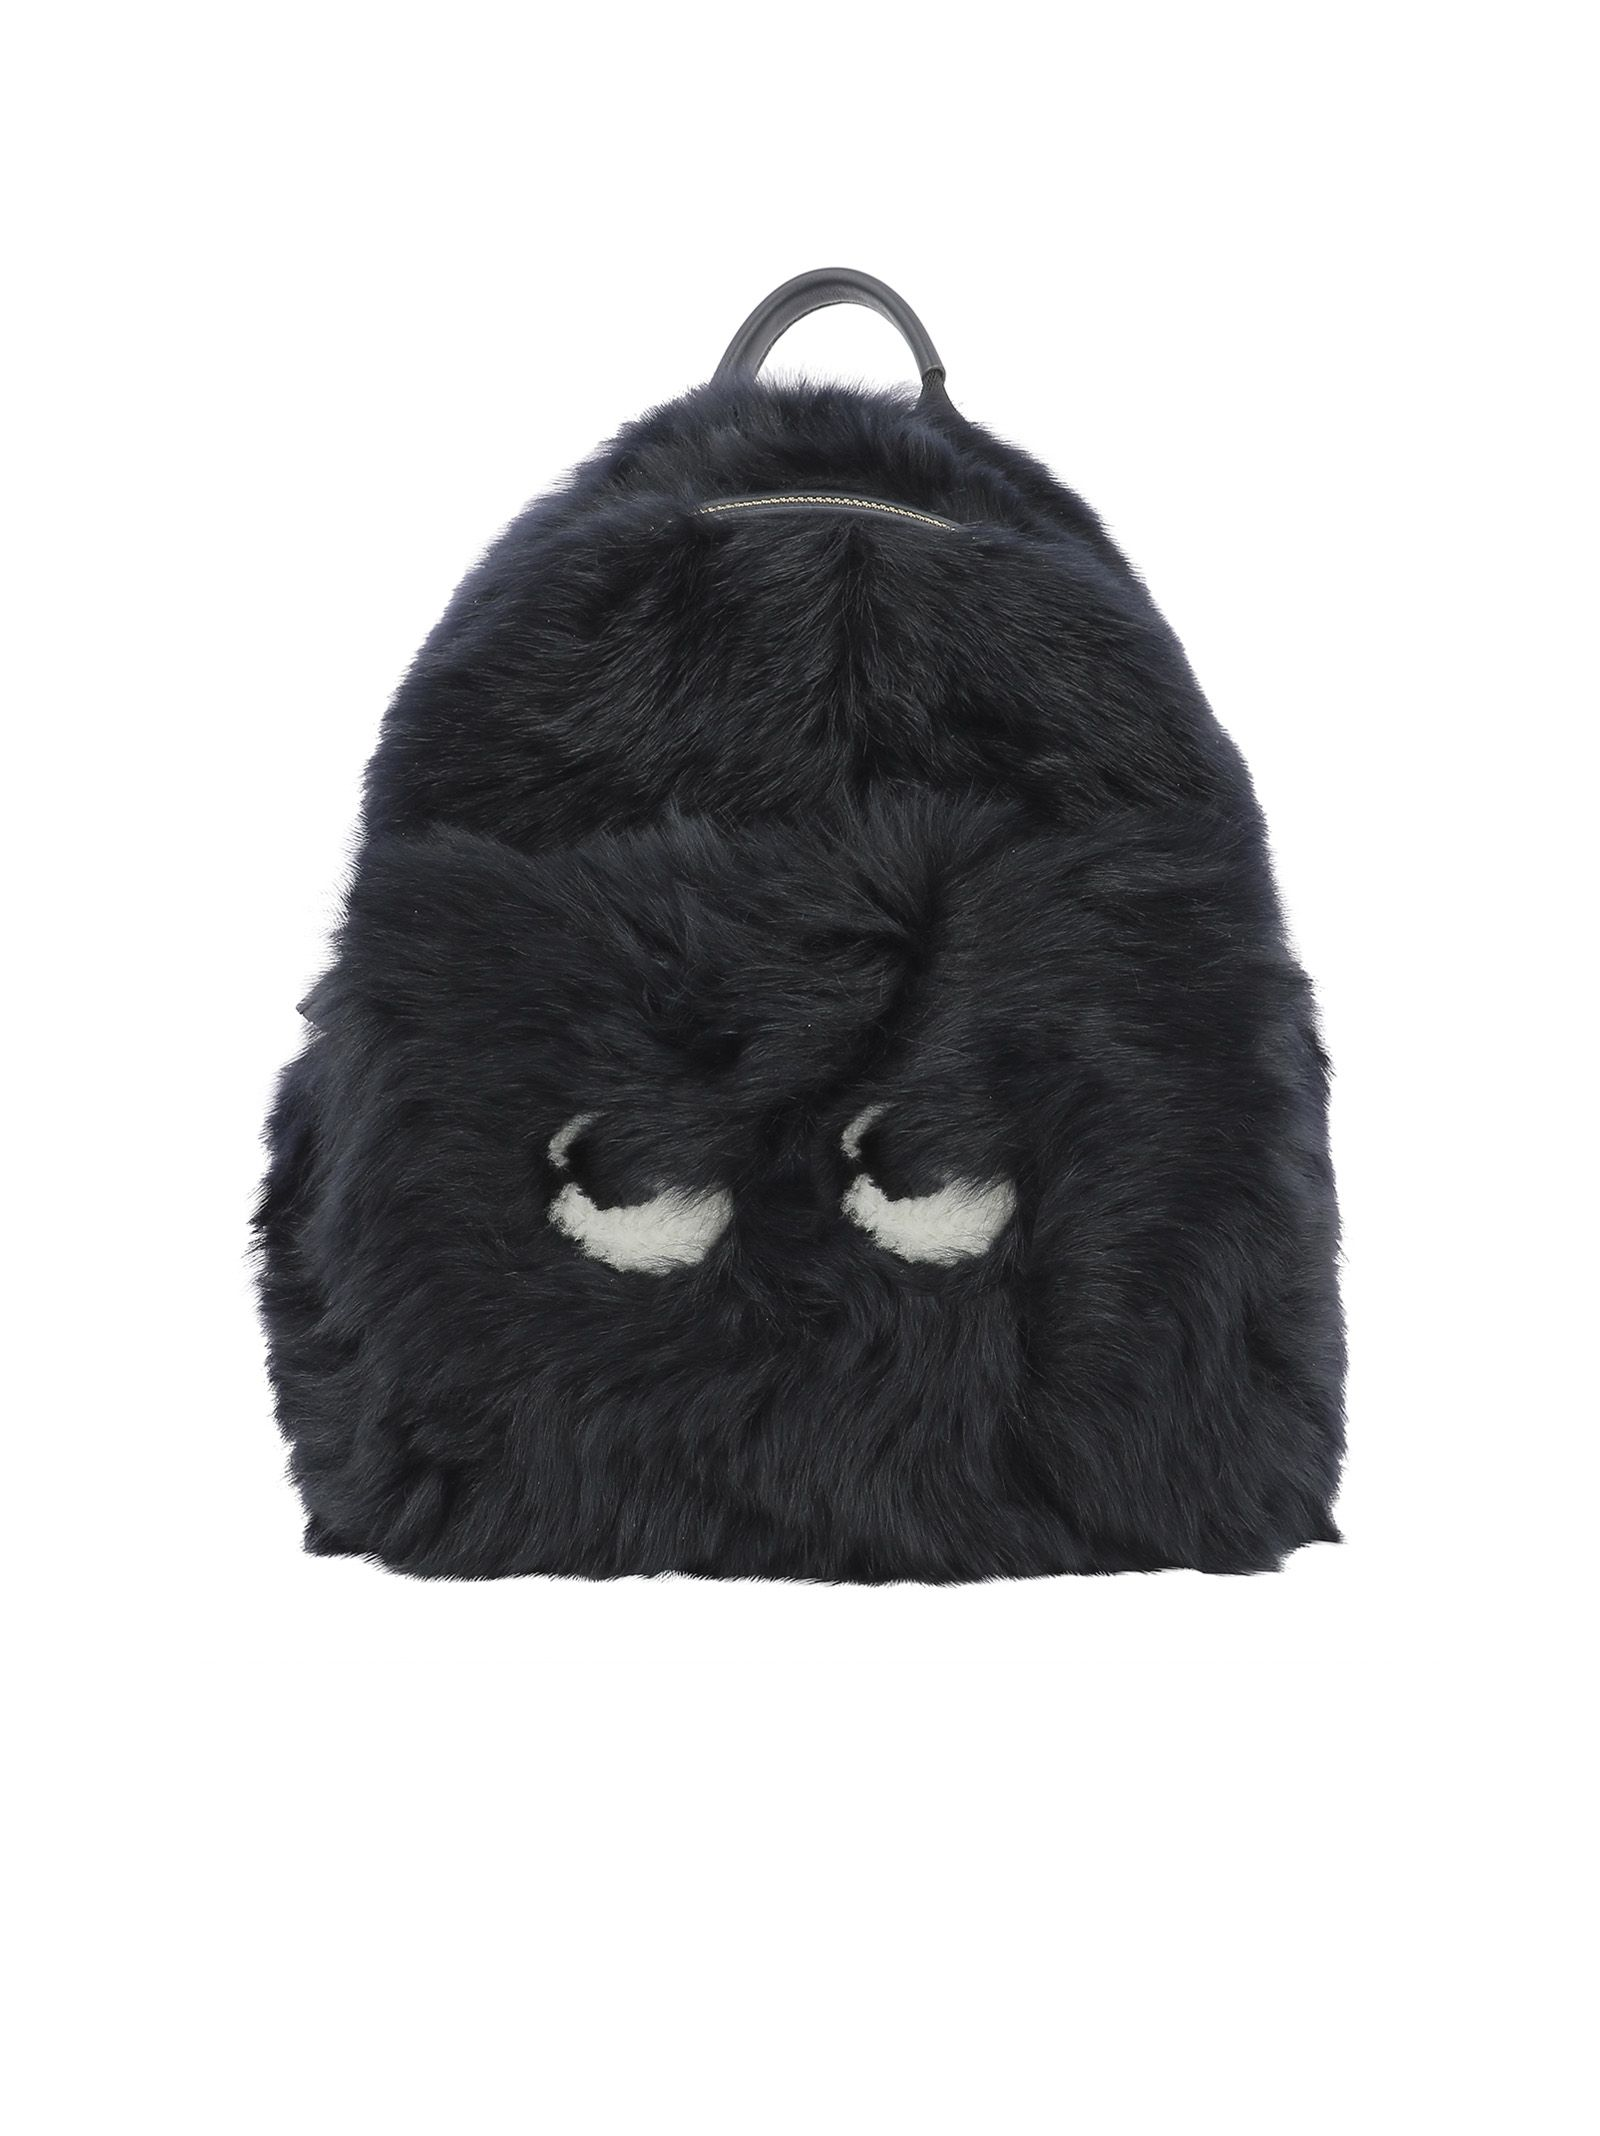 anya hindmarch female dark blue fur backpack